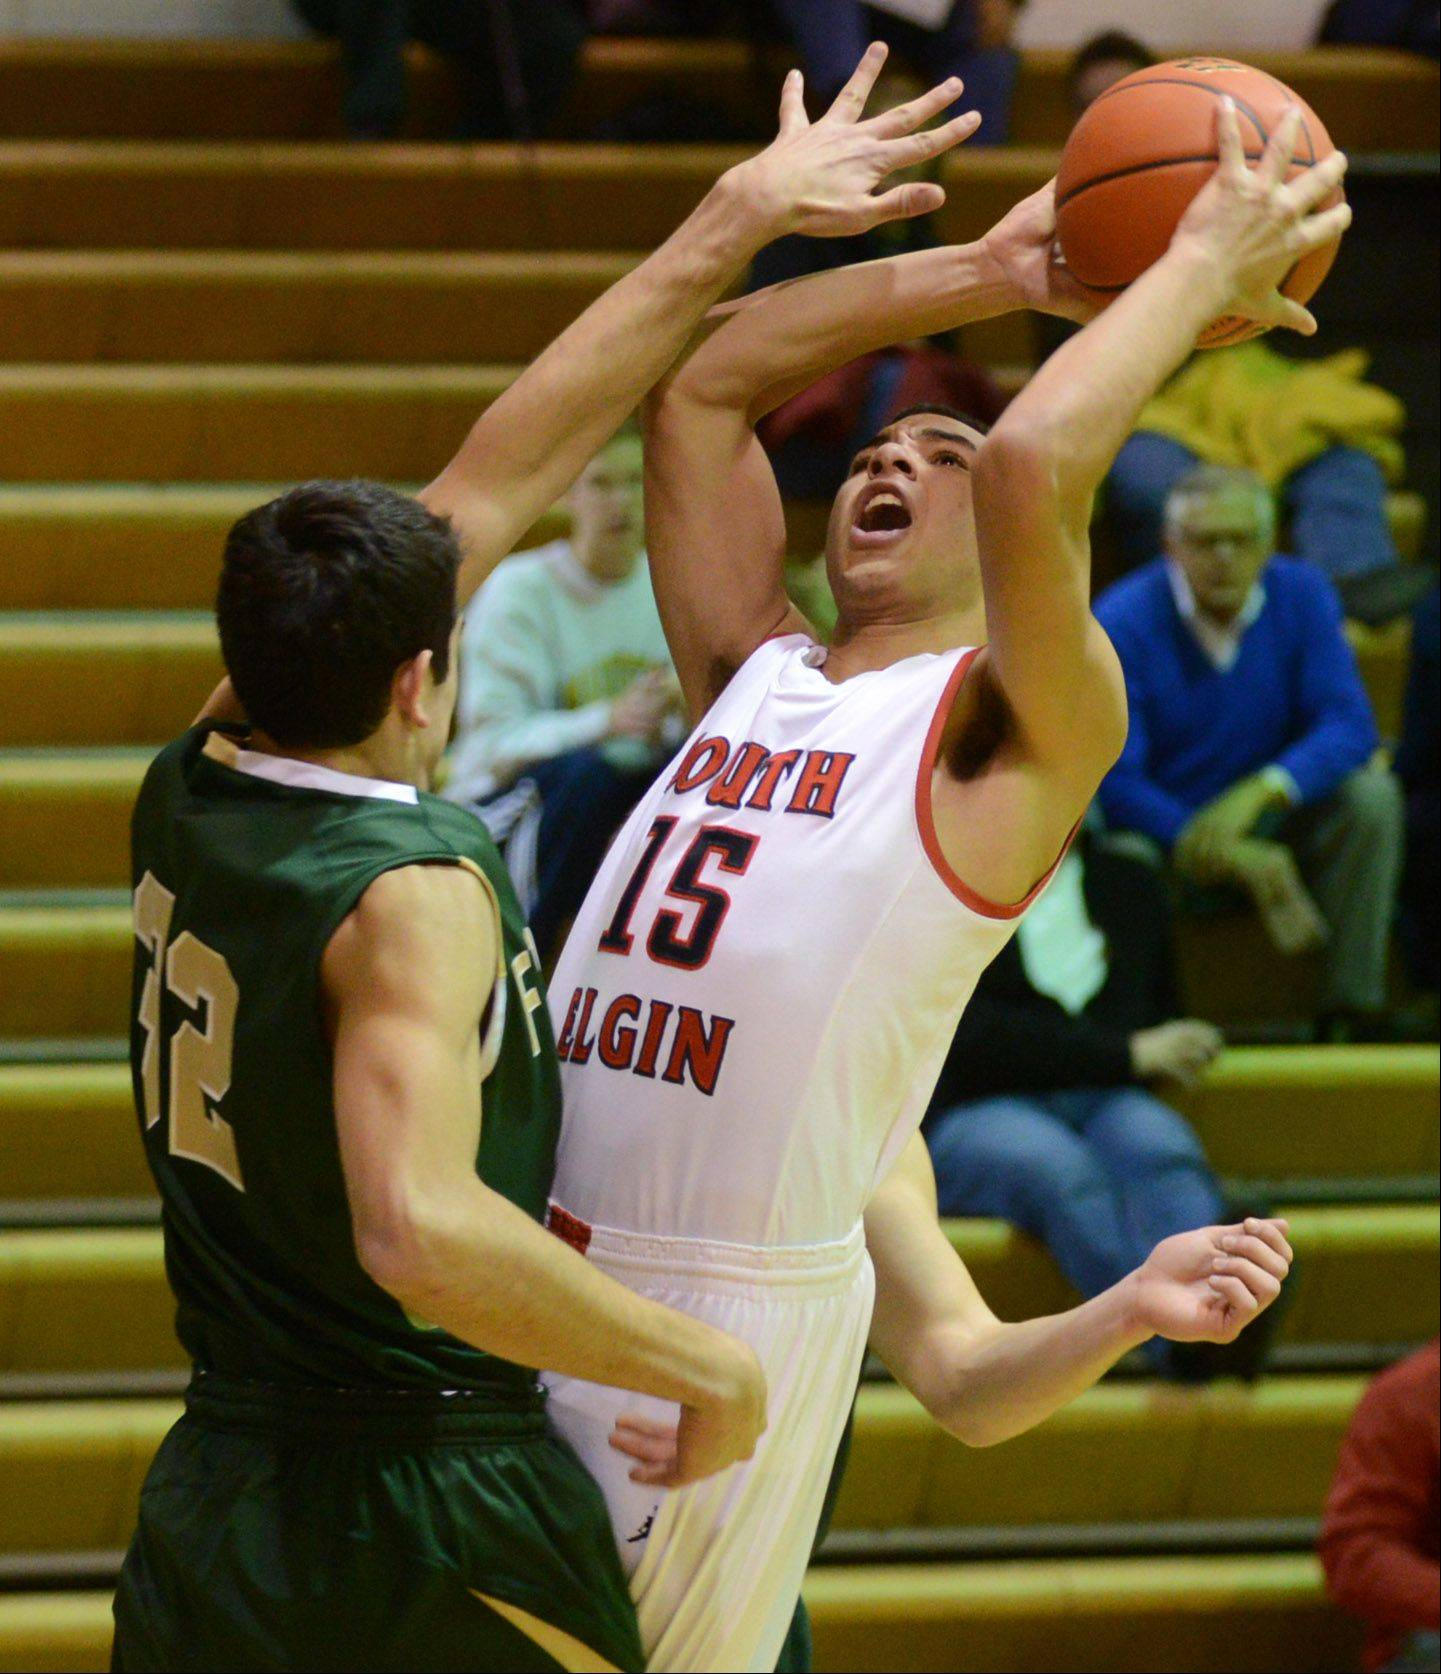 South Elgin's Matthew Smith (15) puts up a shot against Fremd during Wednesday's game at Fenton High School in Bensenville.